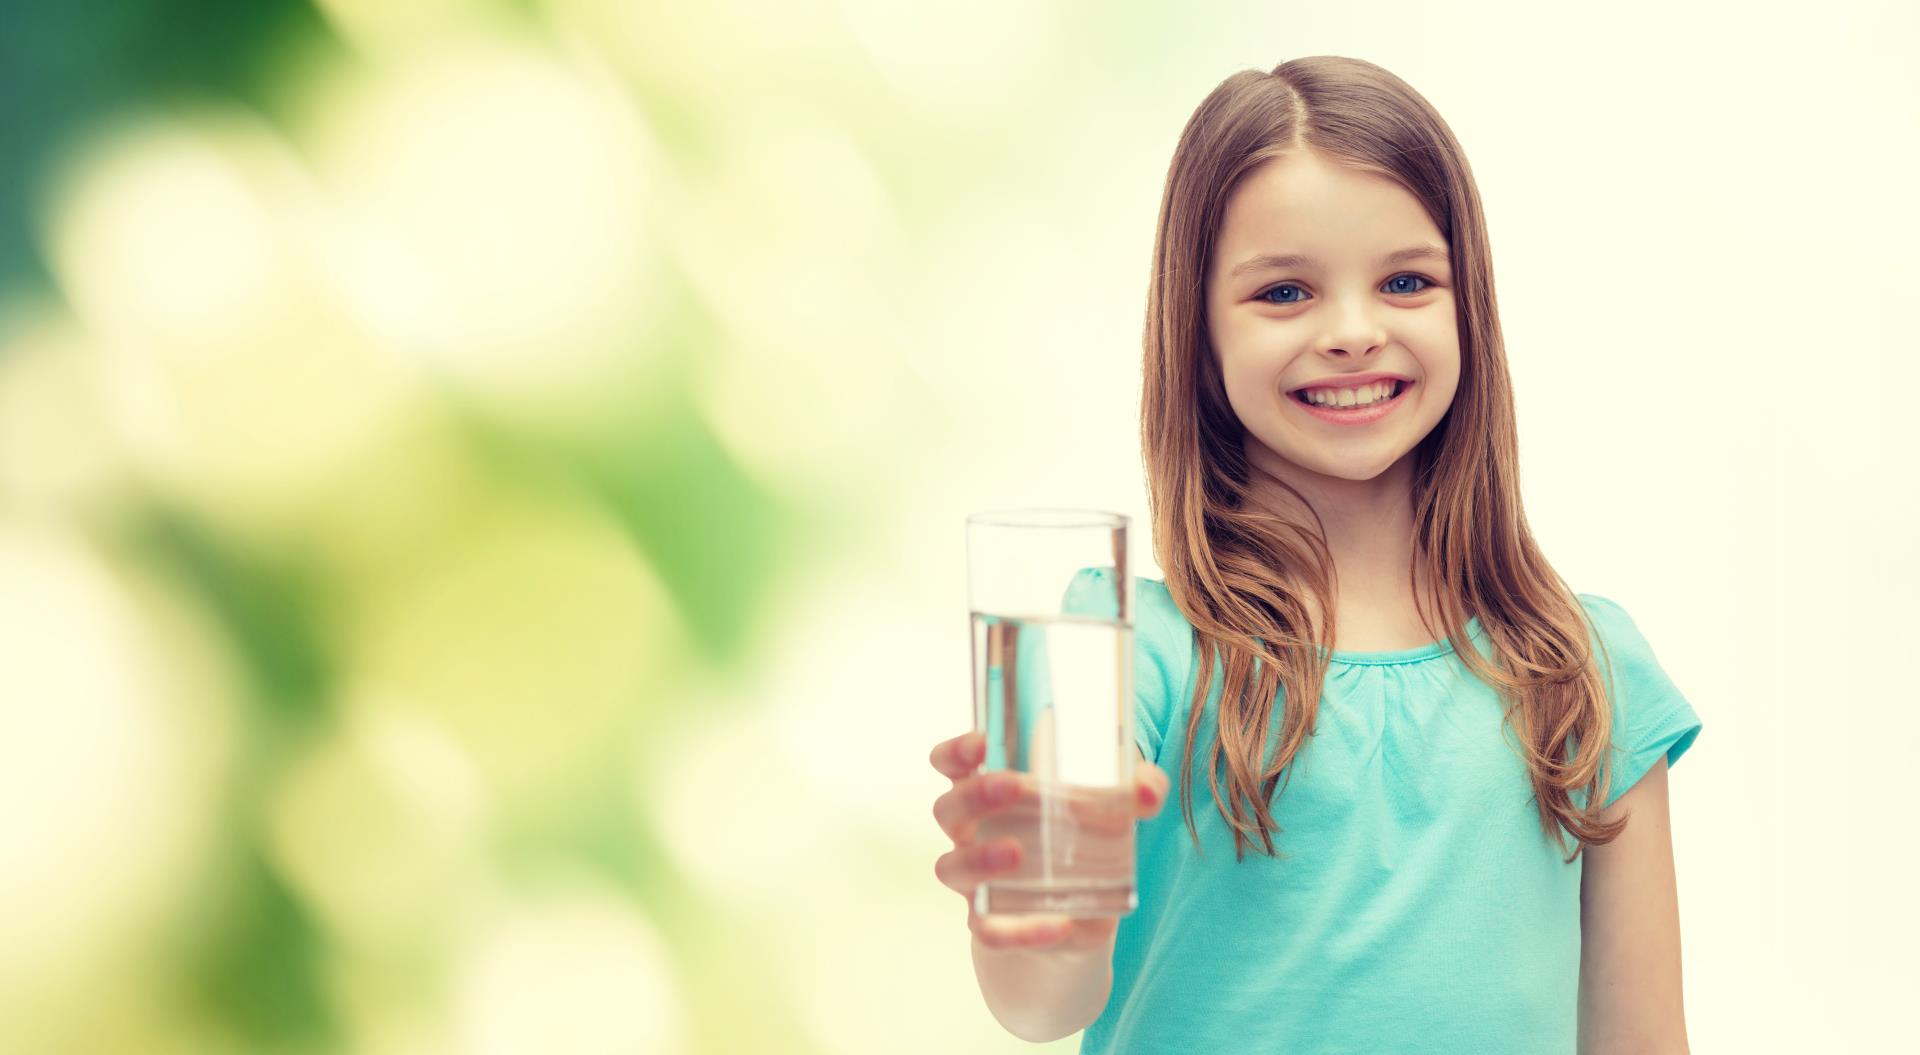 Girl holding water glass and utility department logo